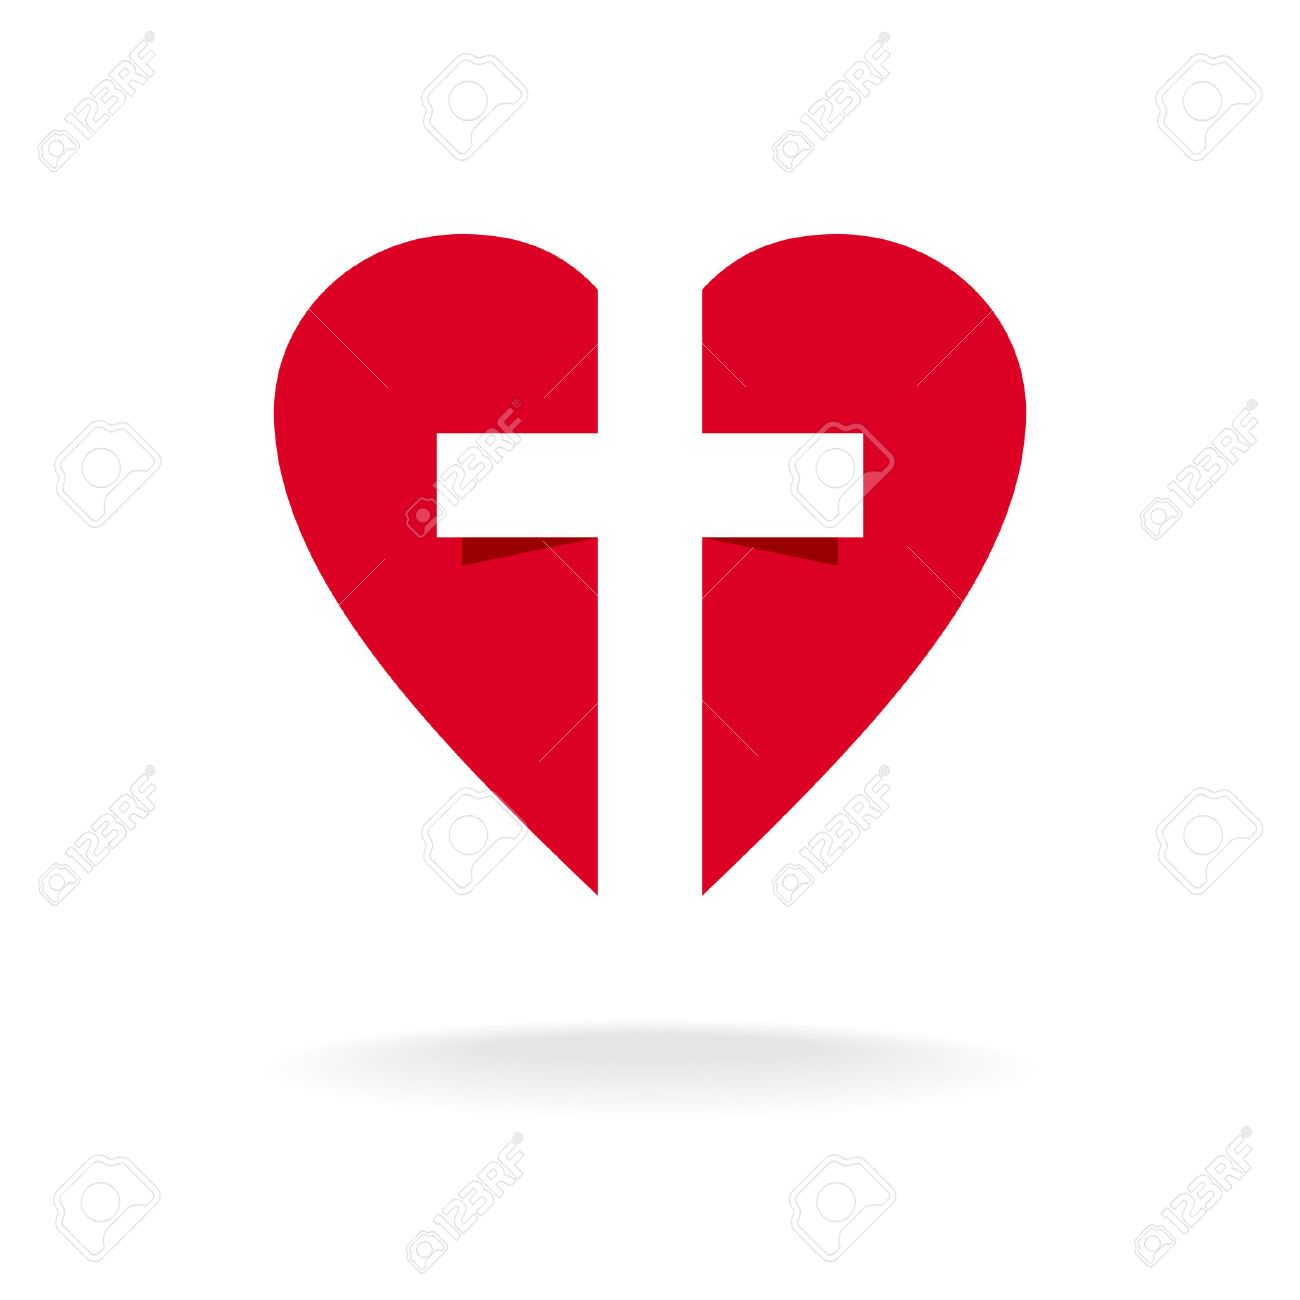 heart with cross church logo template royalty free cliparts vectors